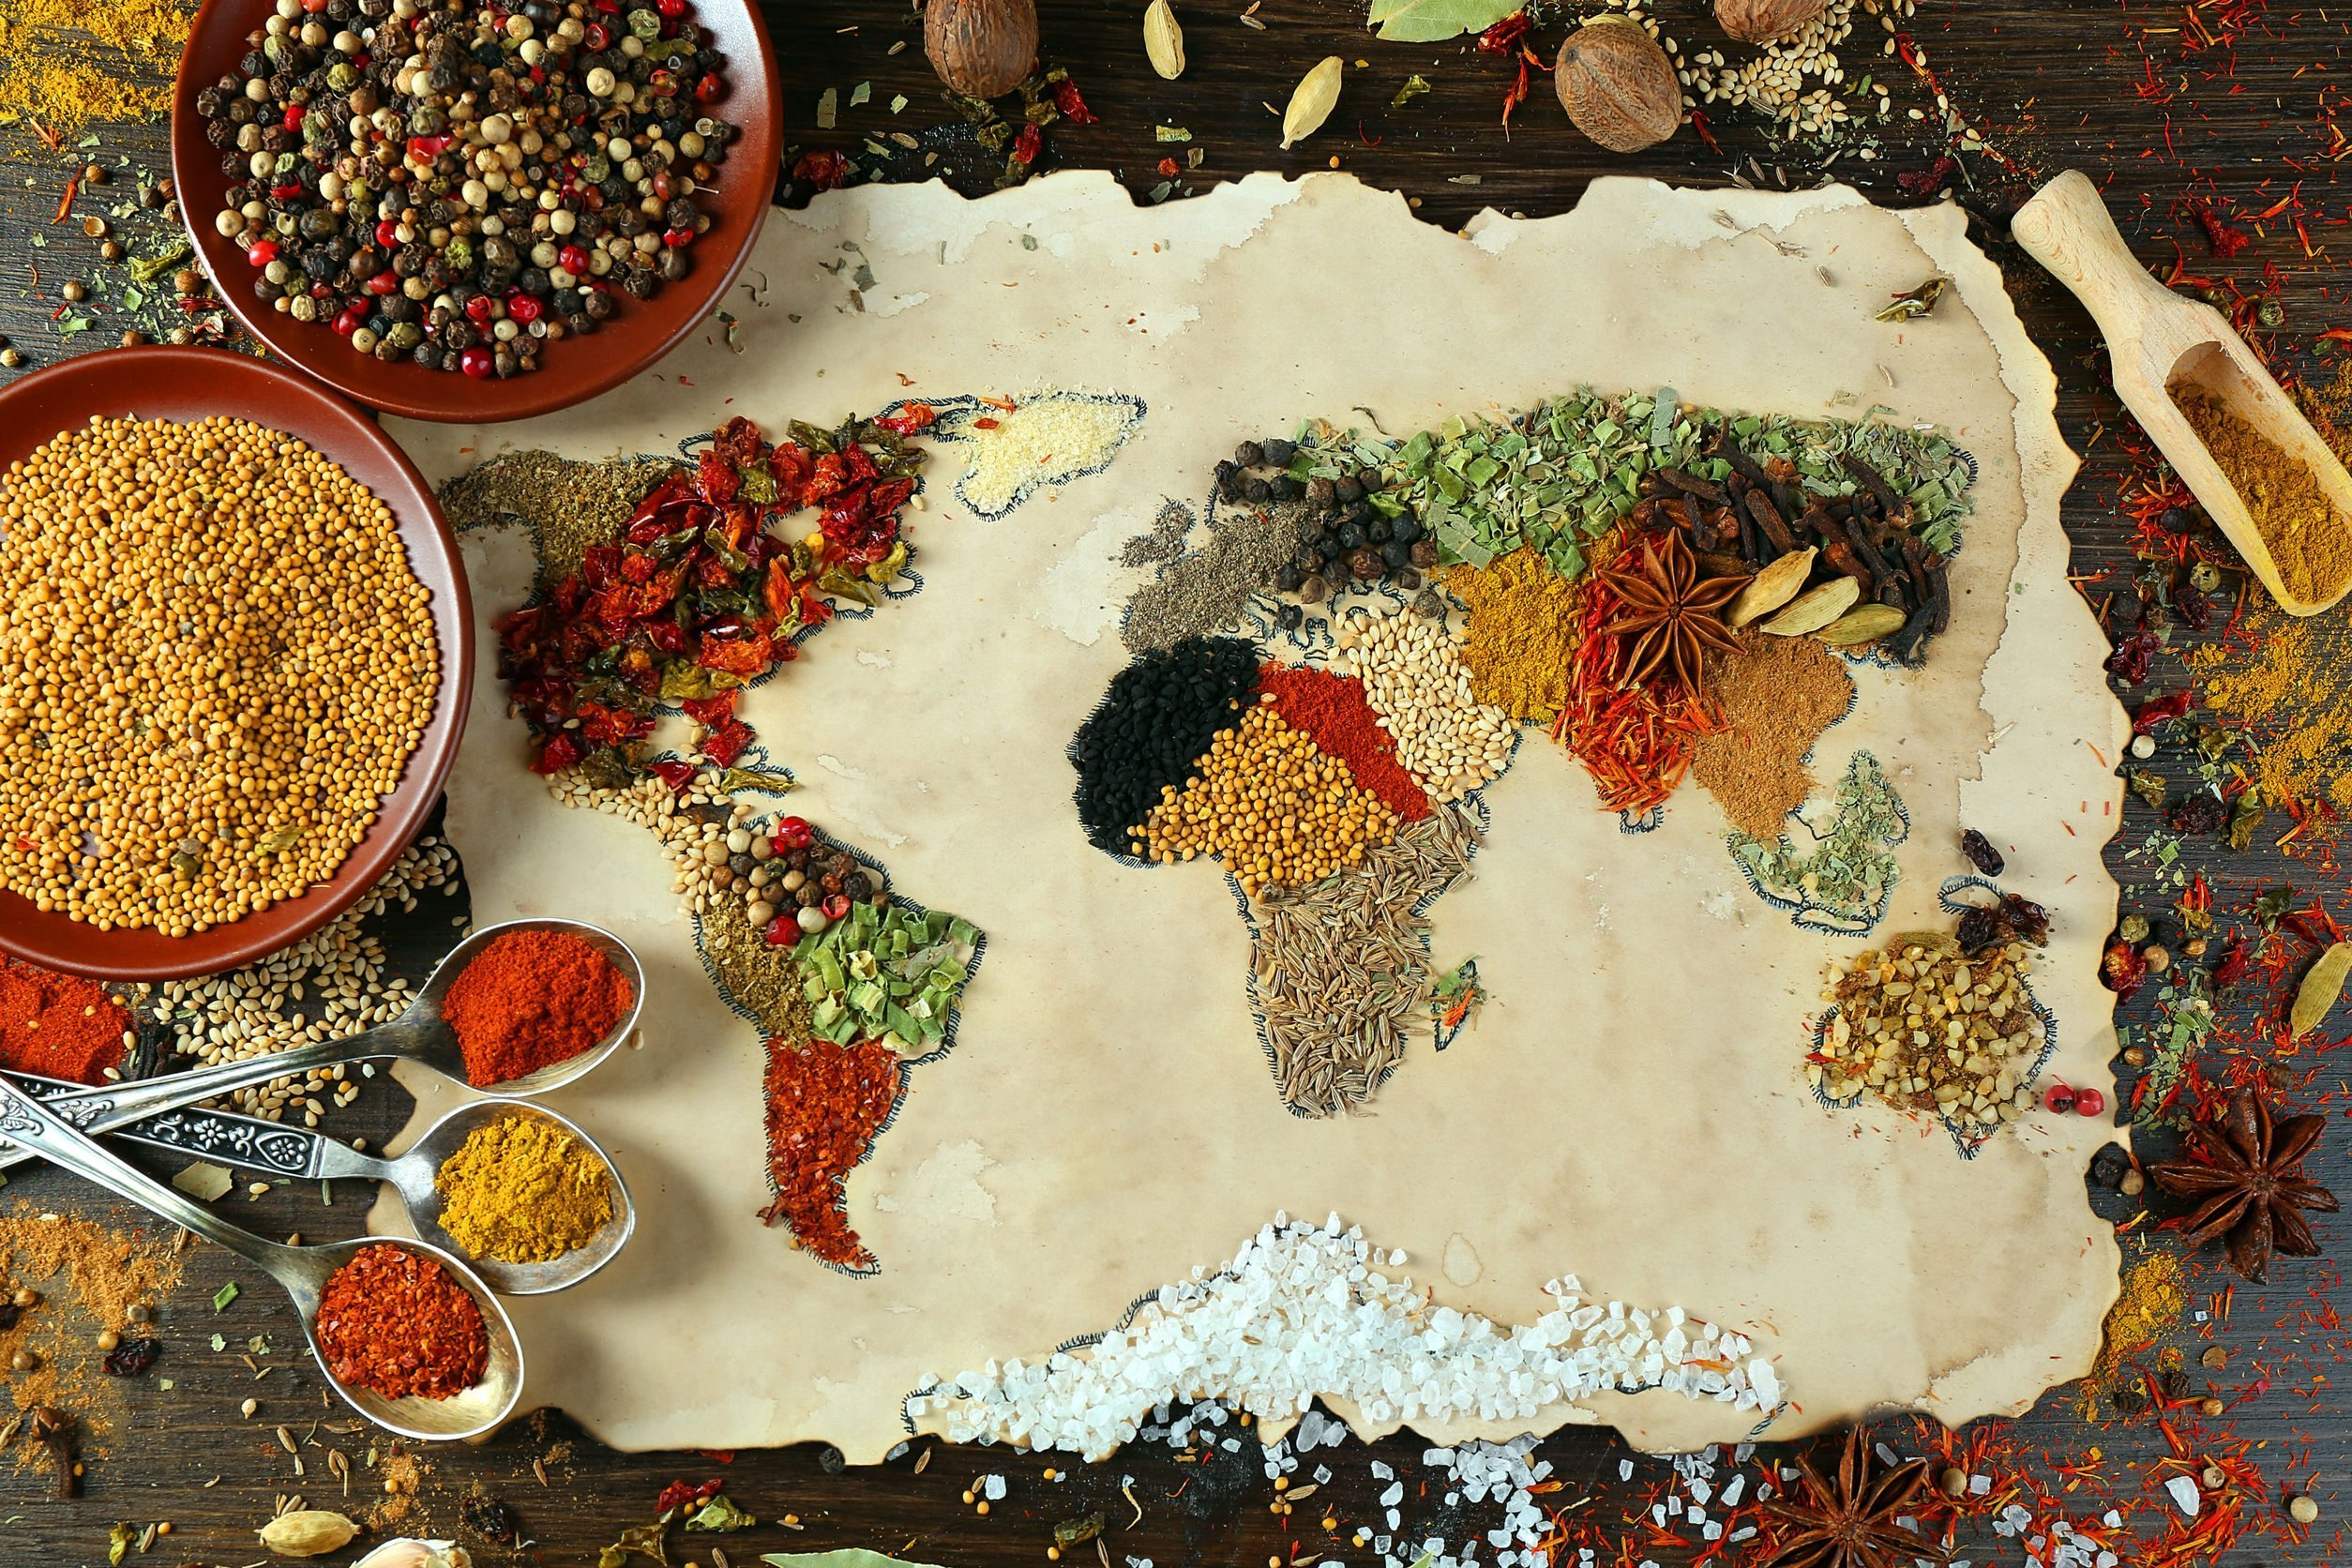 Image: map of world made from different kinds of spices on wooden background